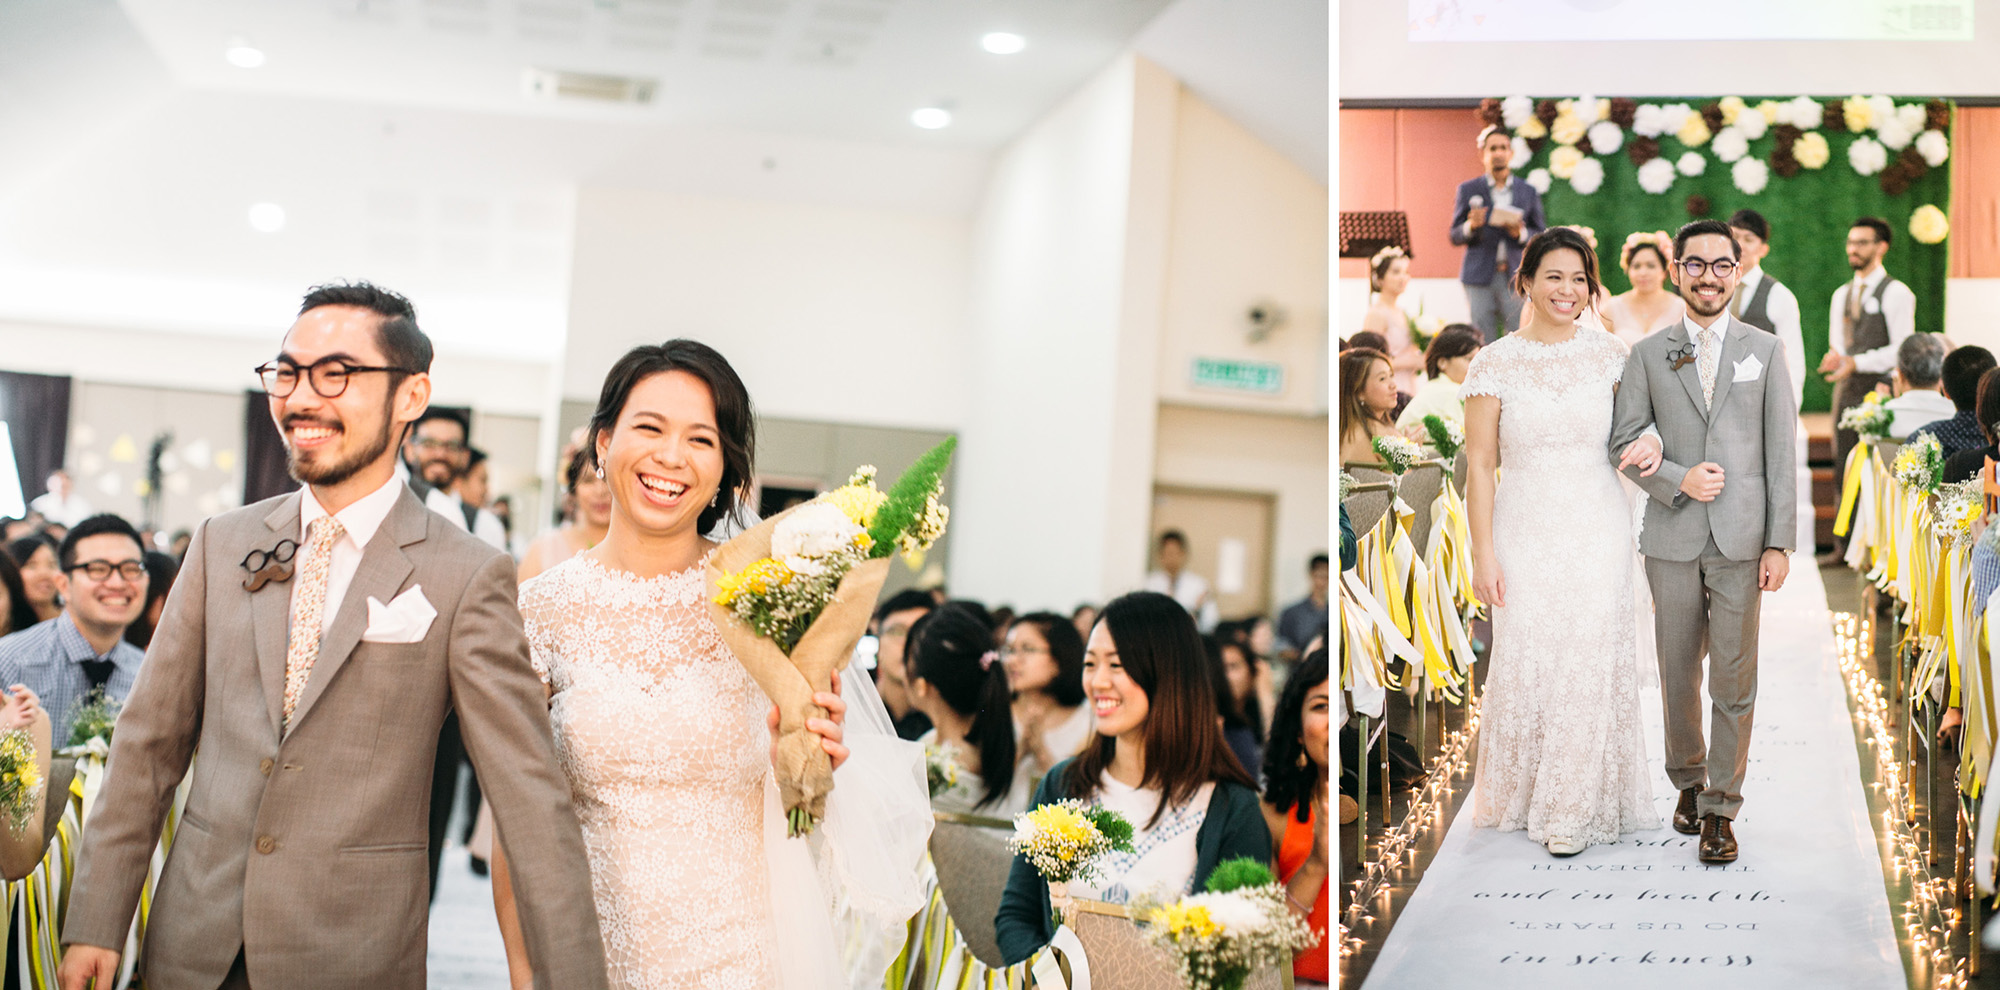 56-hellojanelee-sam grace-malaysia-wedding-day